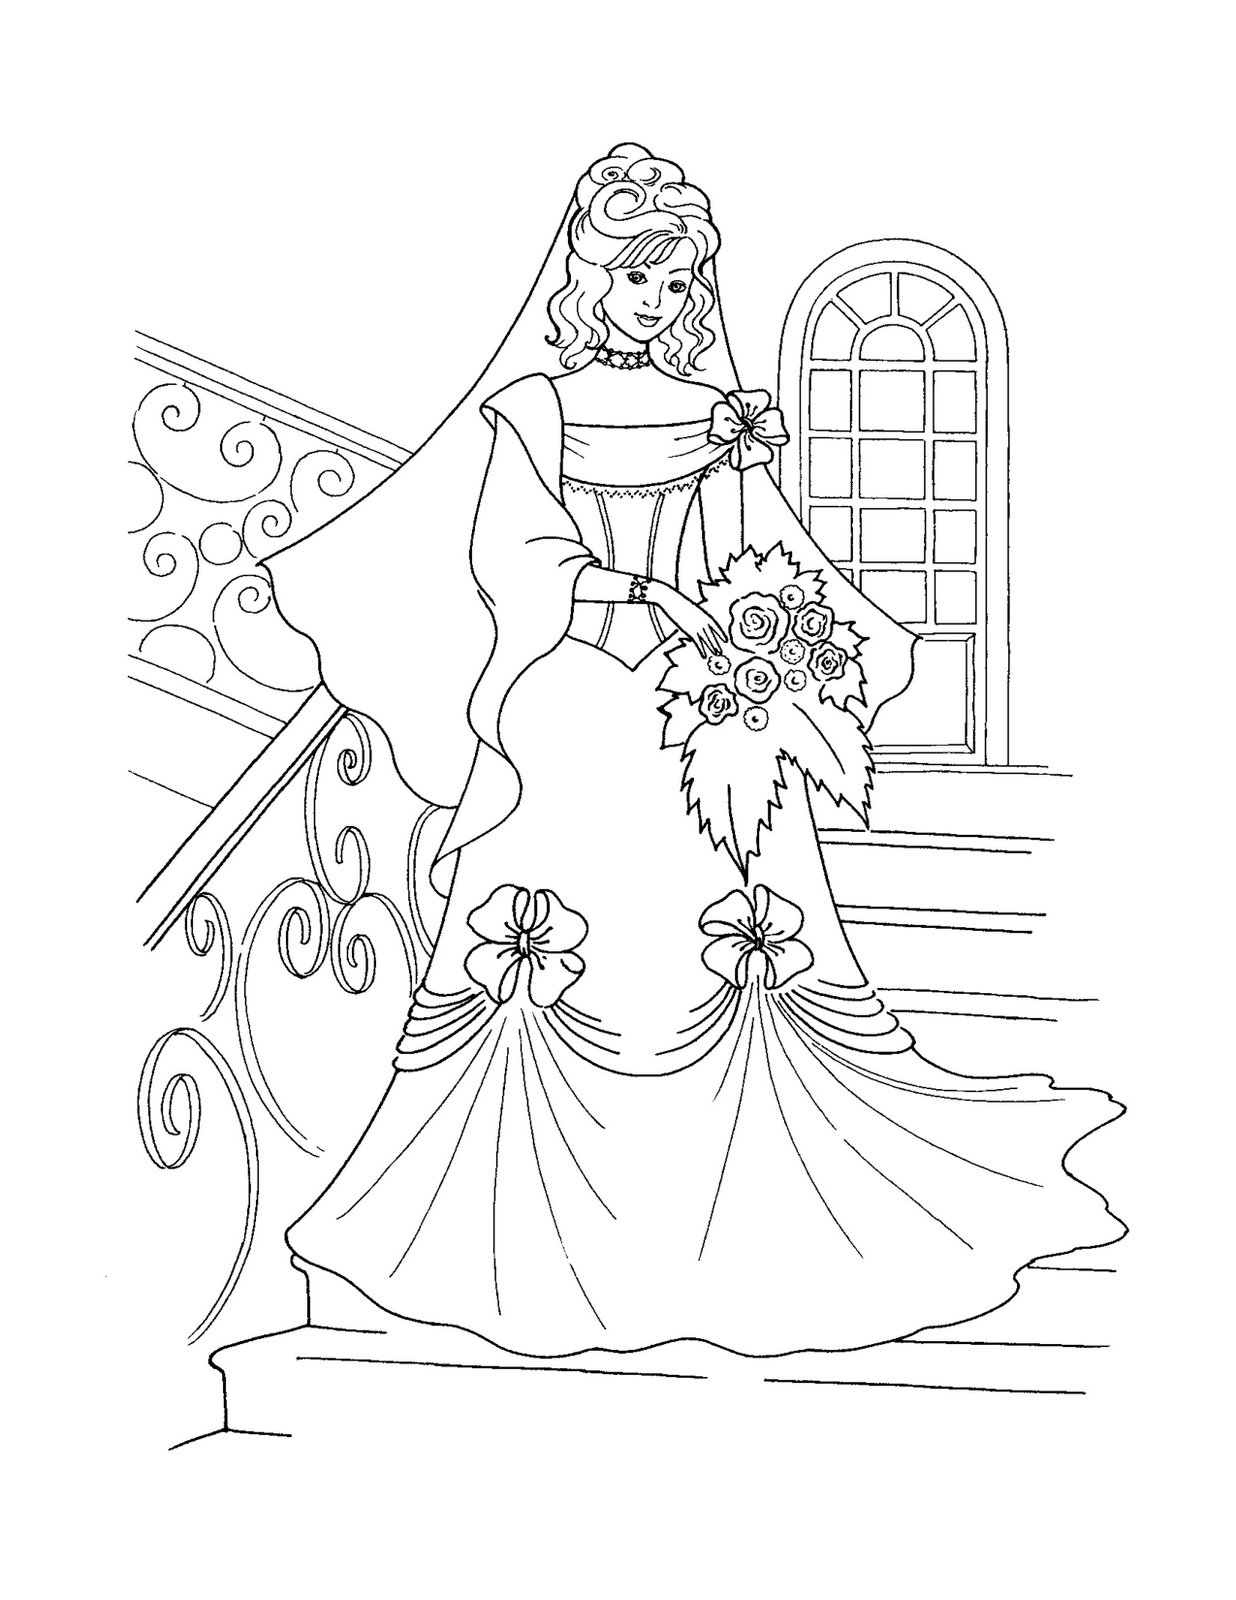 princess coloring pages best coloring pages for kids. Black Bedroom Furniture Sets. Home Design Ideas